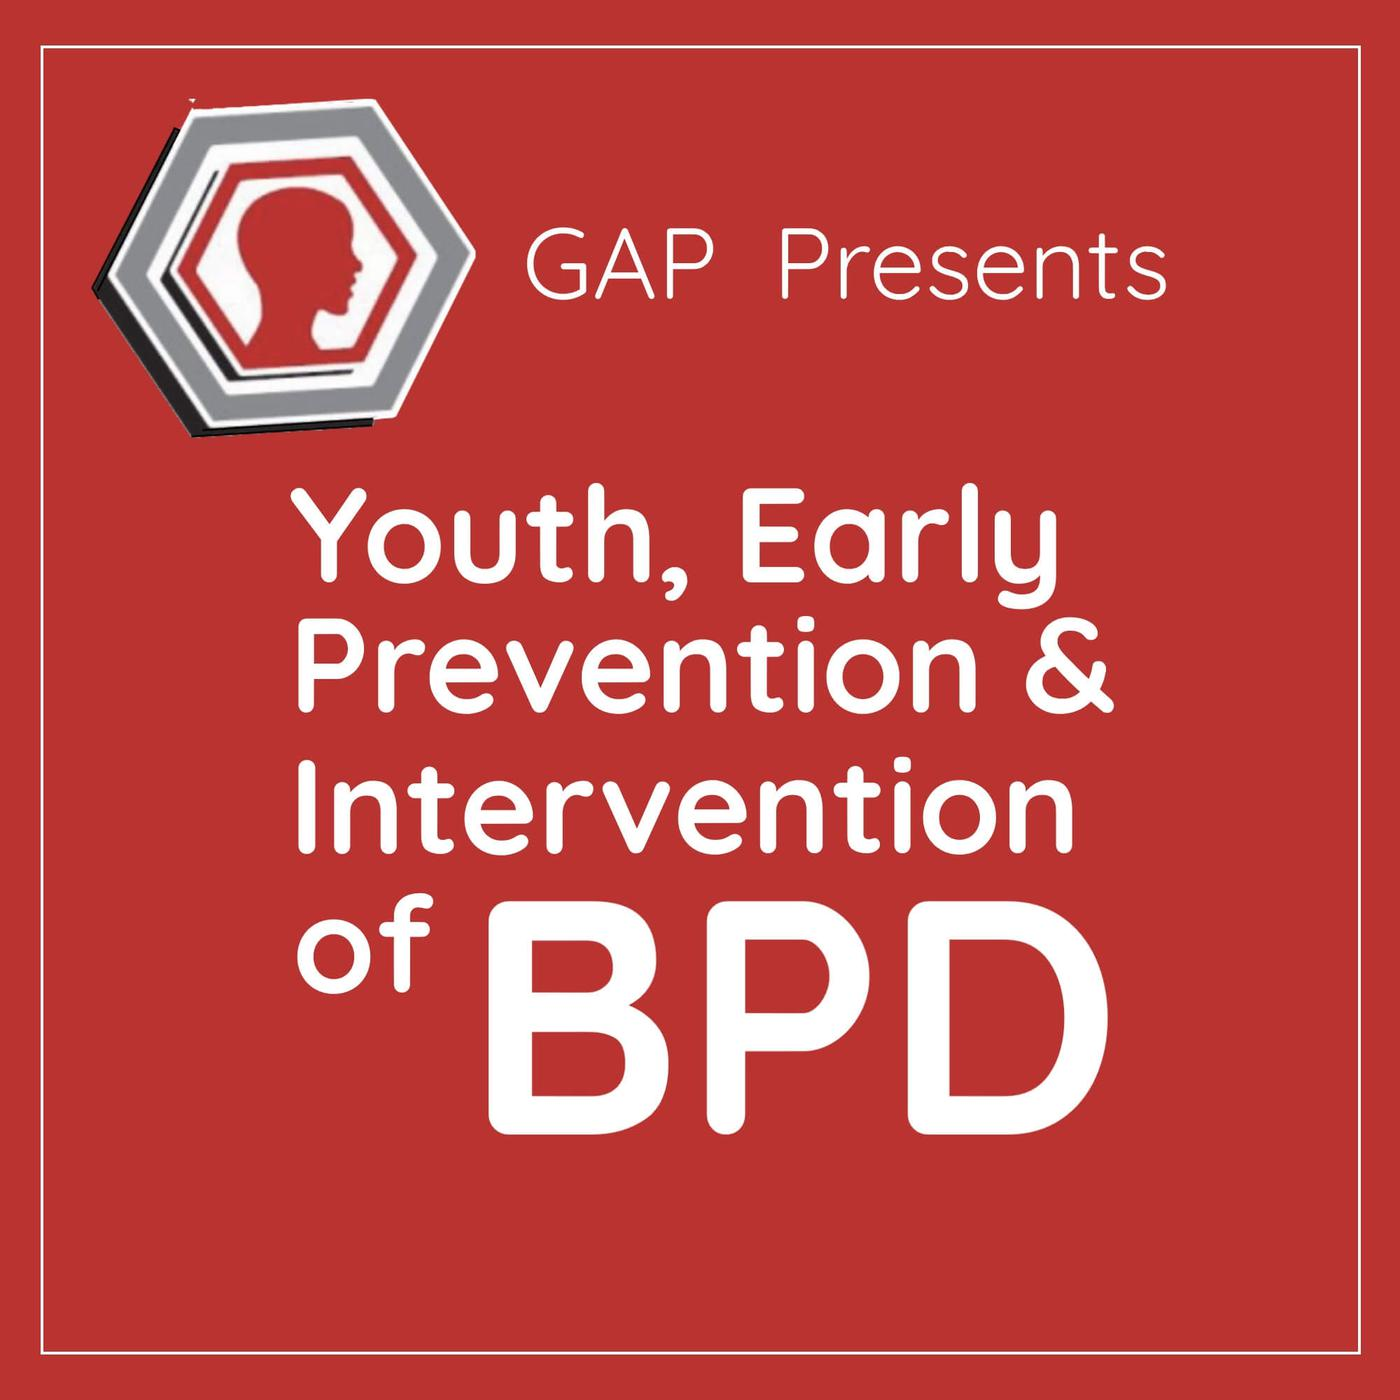 GAP Call-in Series on Youth, Early Prevention and